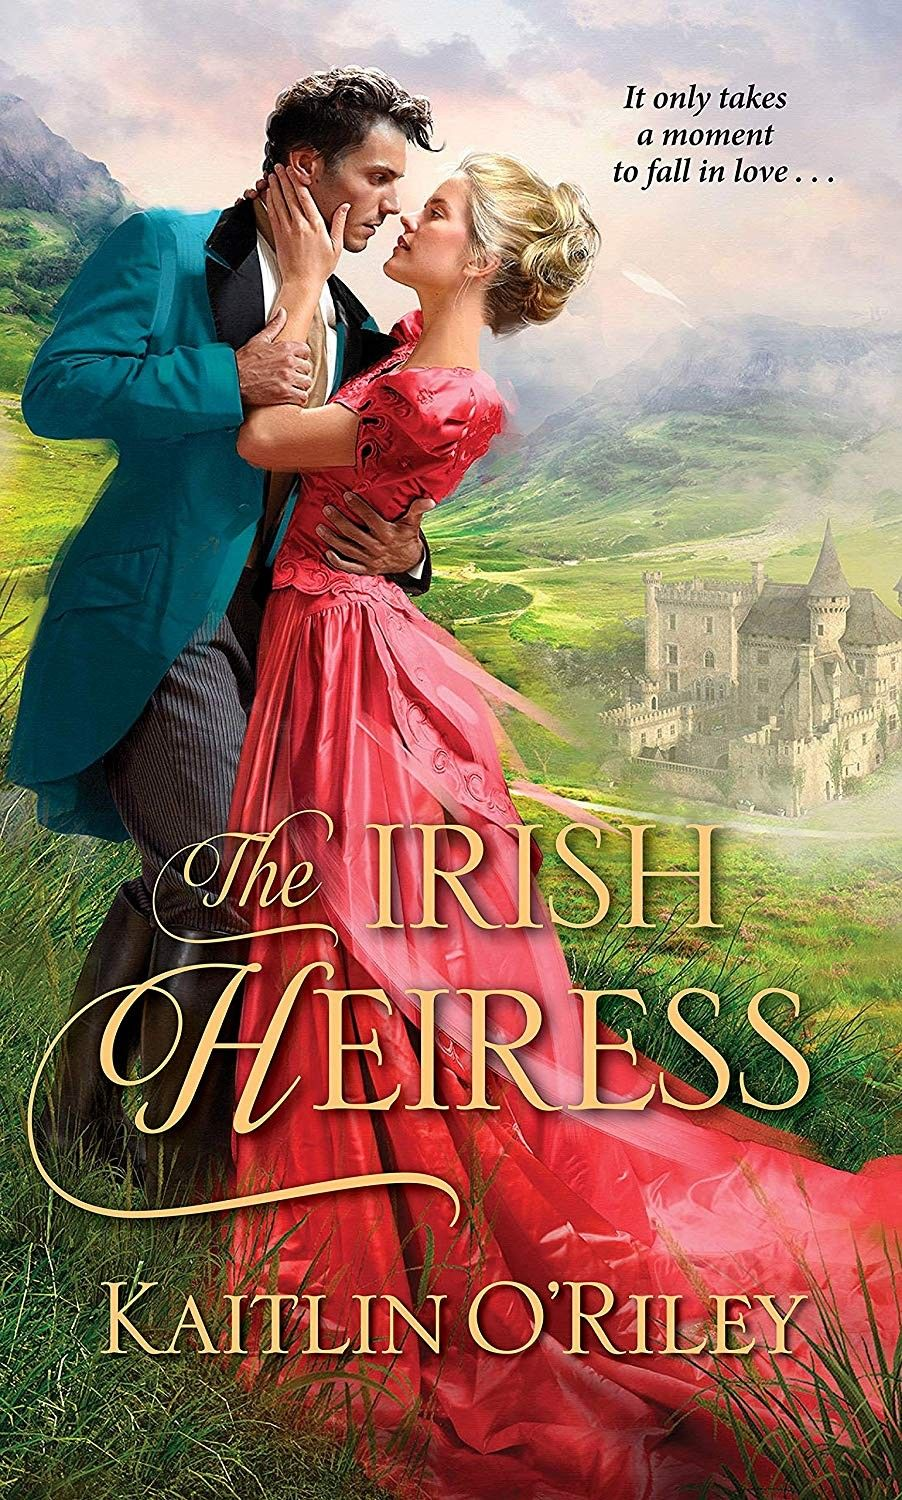 Pin by Hazel Ruales on Lovely Covers in 2019 | Fantasy books